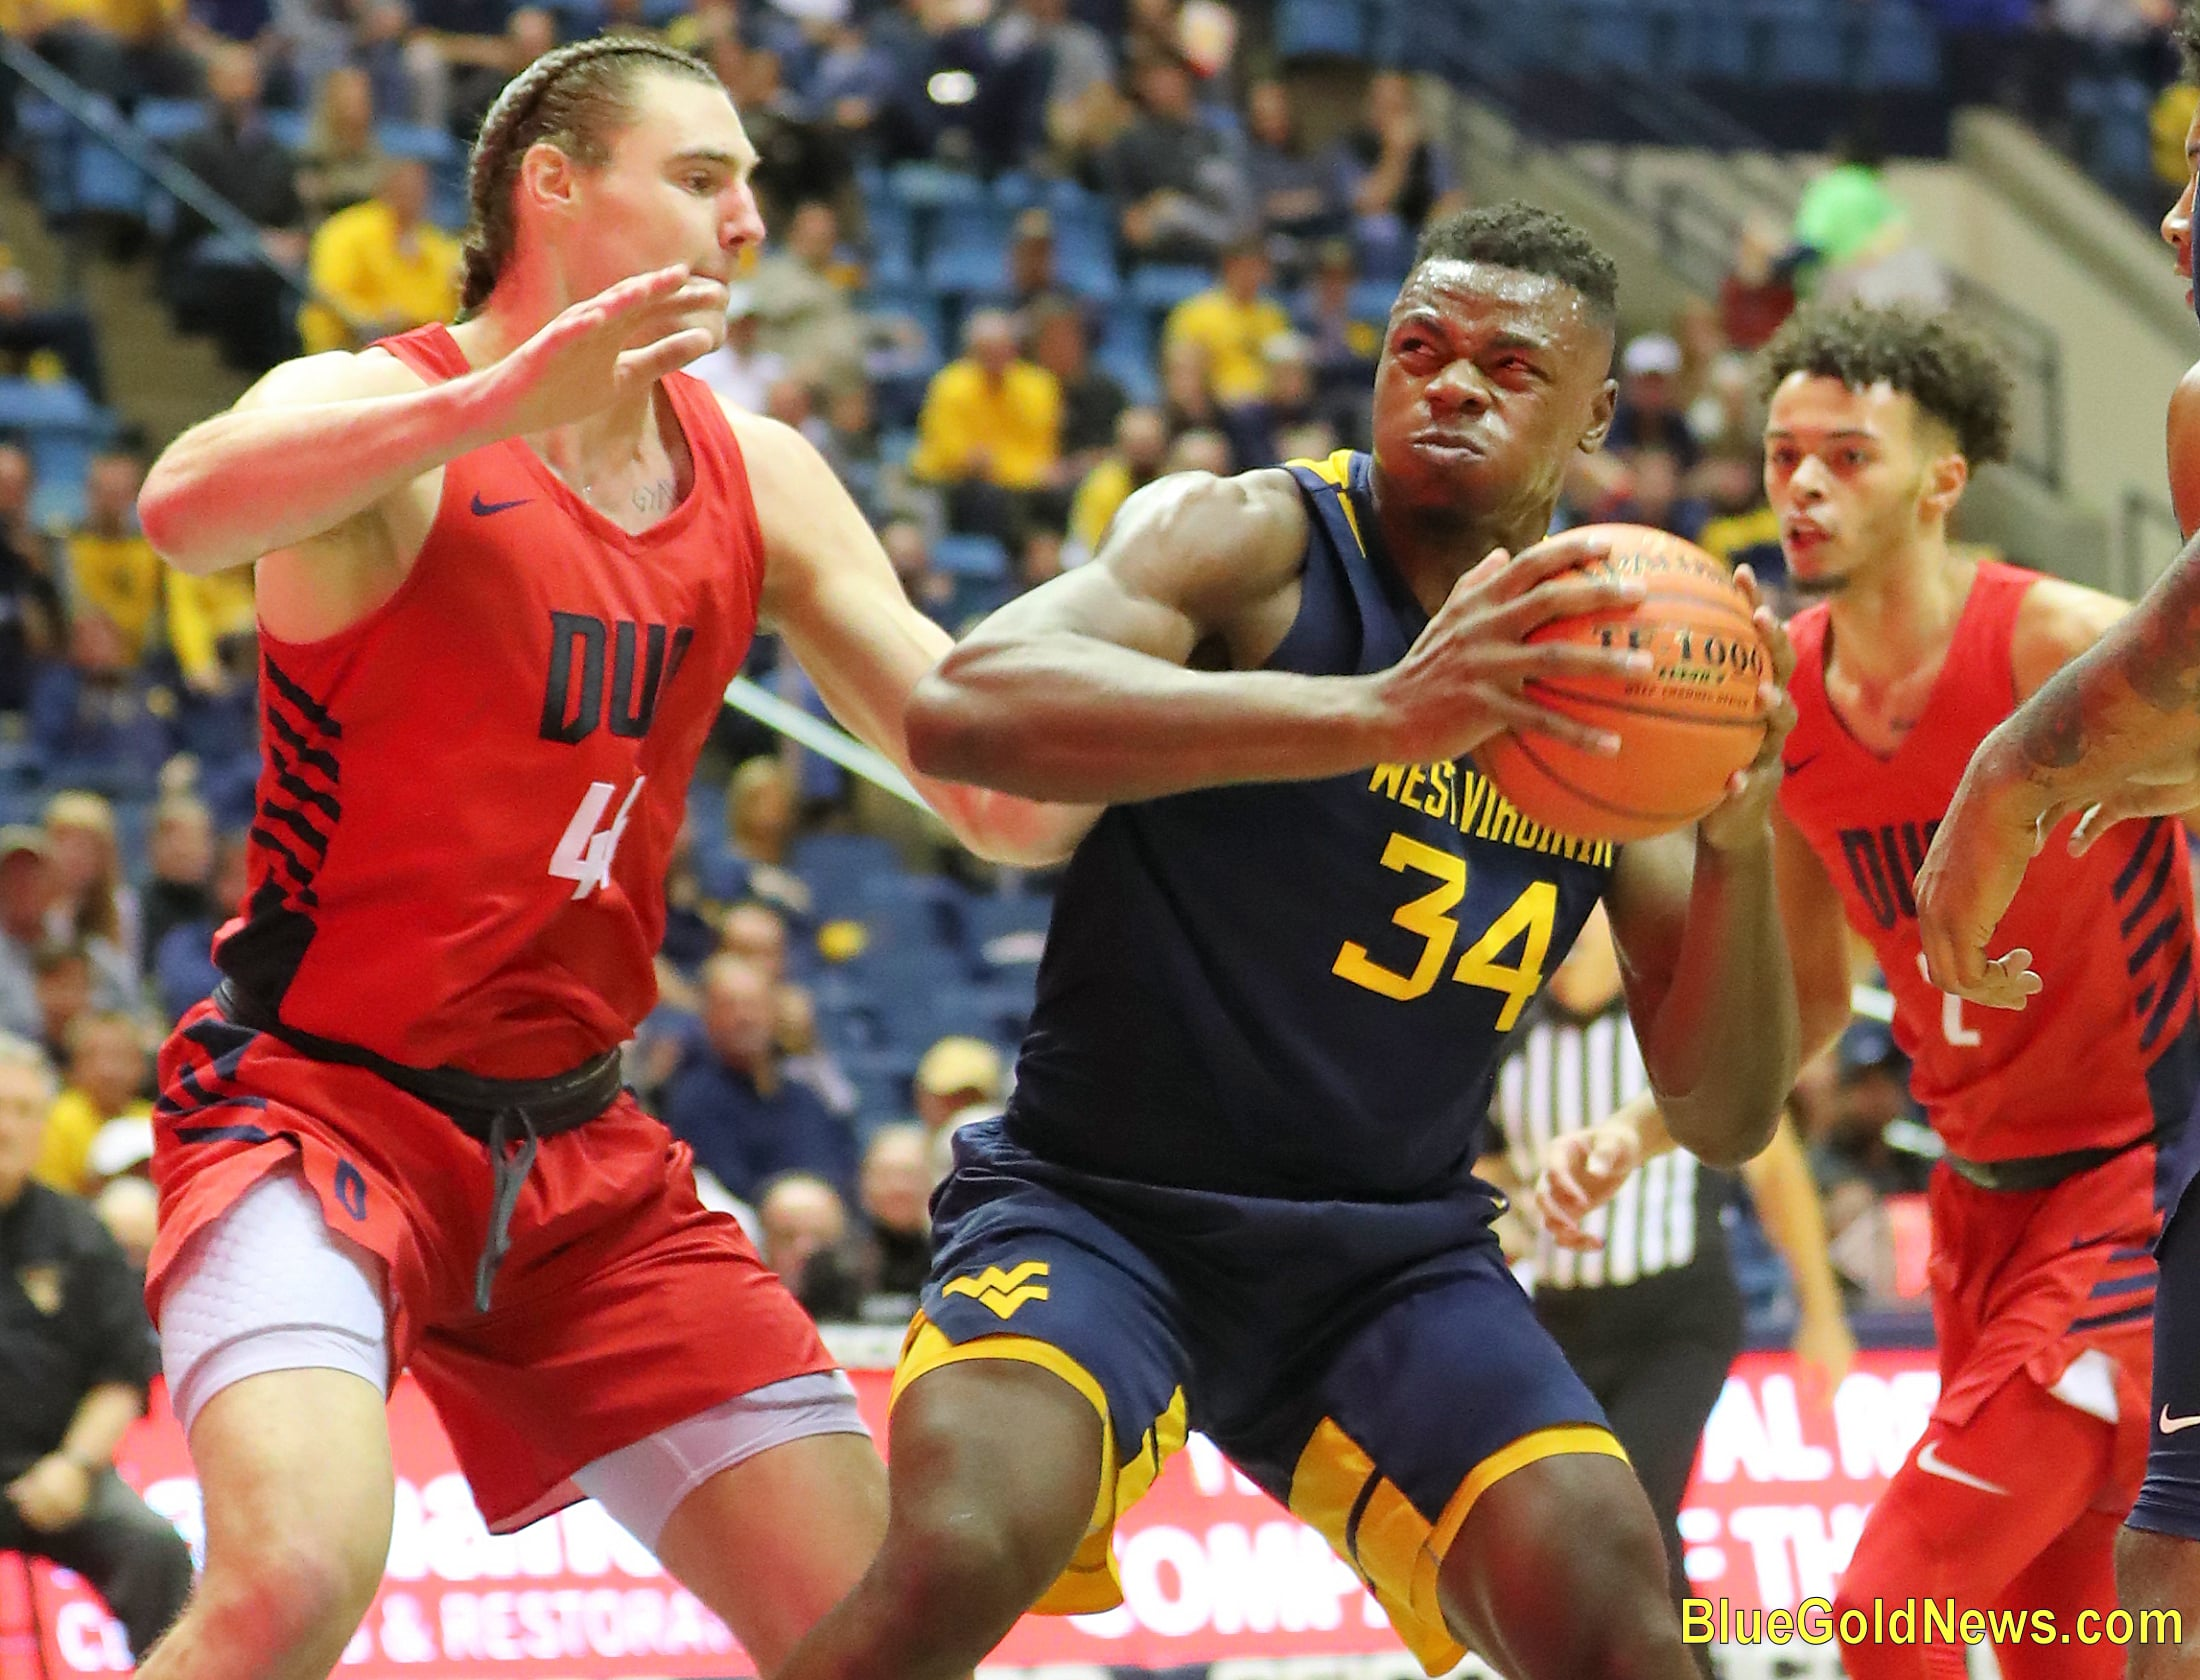 West Virginia forward Oscar Tshiebwe (34) clears space against Duquesne's Bailey Steele (44)